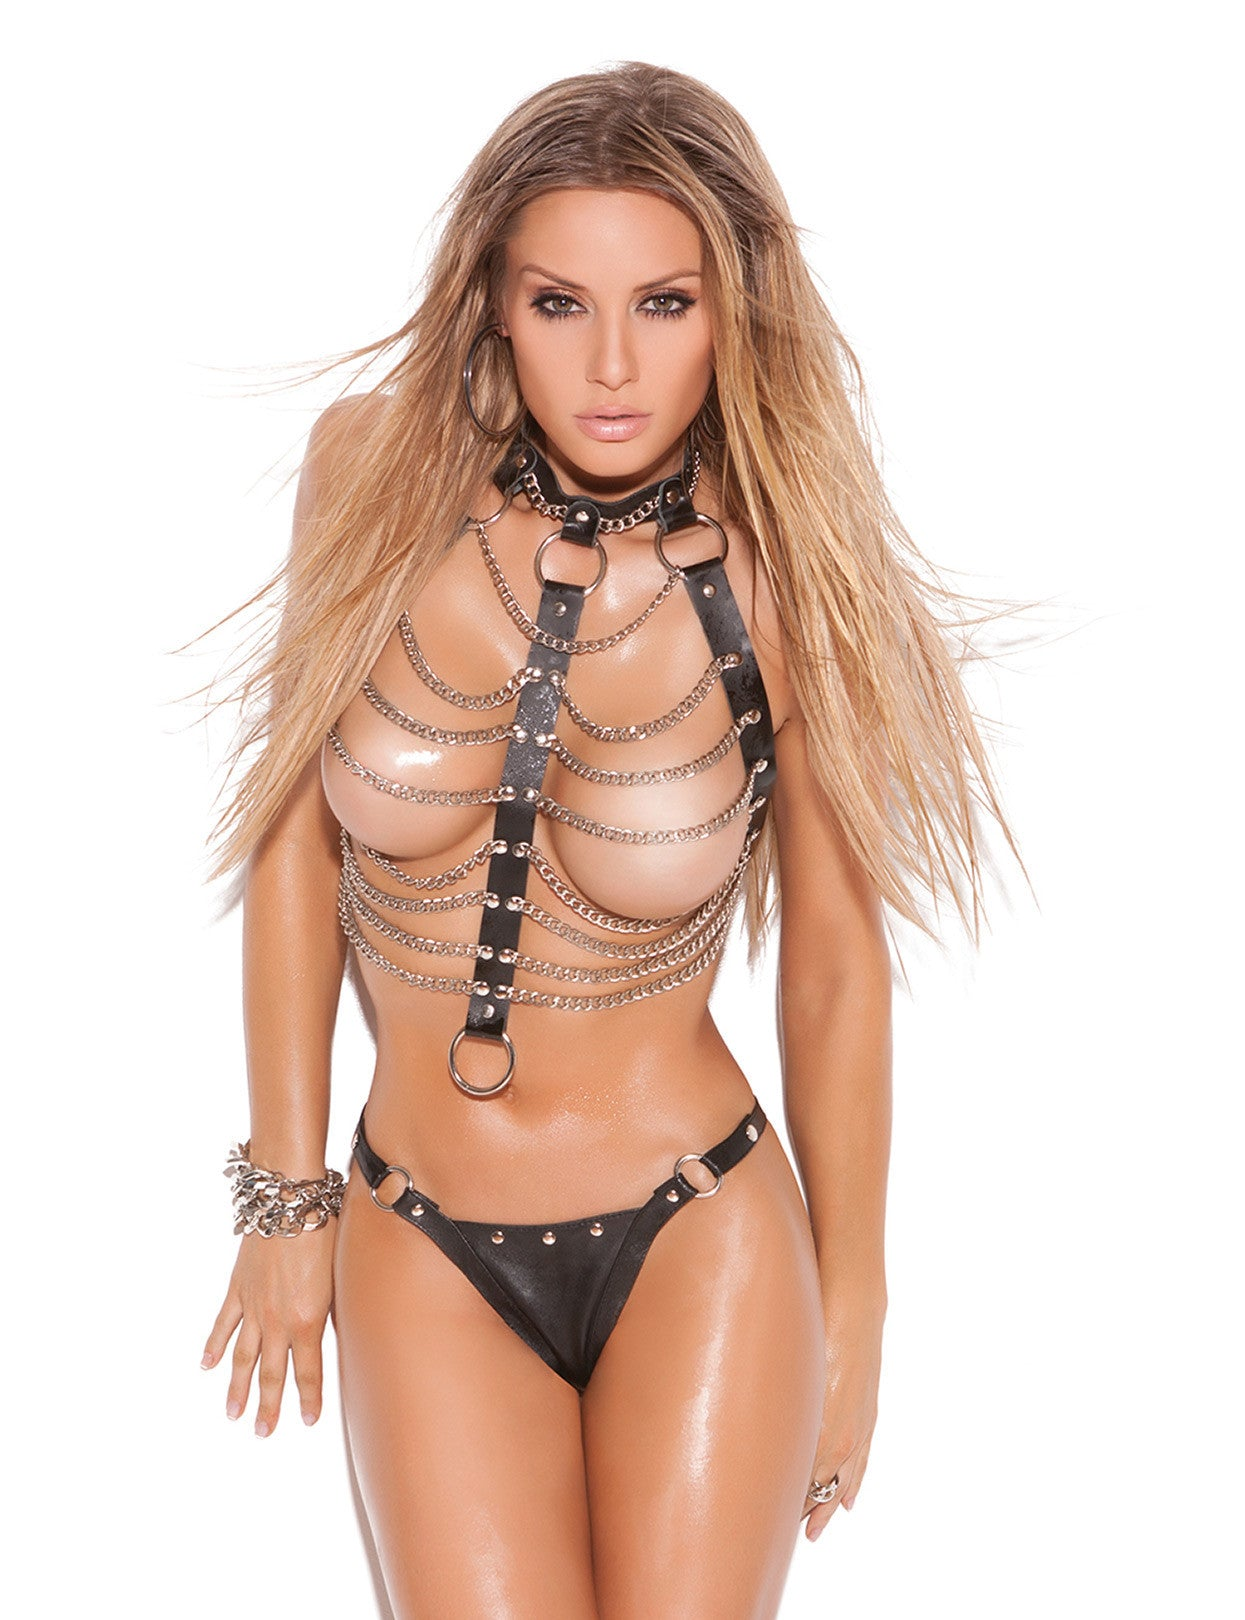 Leather 'n Chains Vest and Thong - just damn sexy  - 1